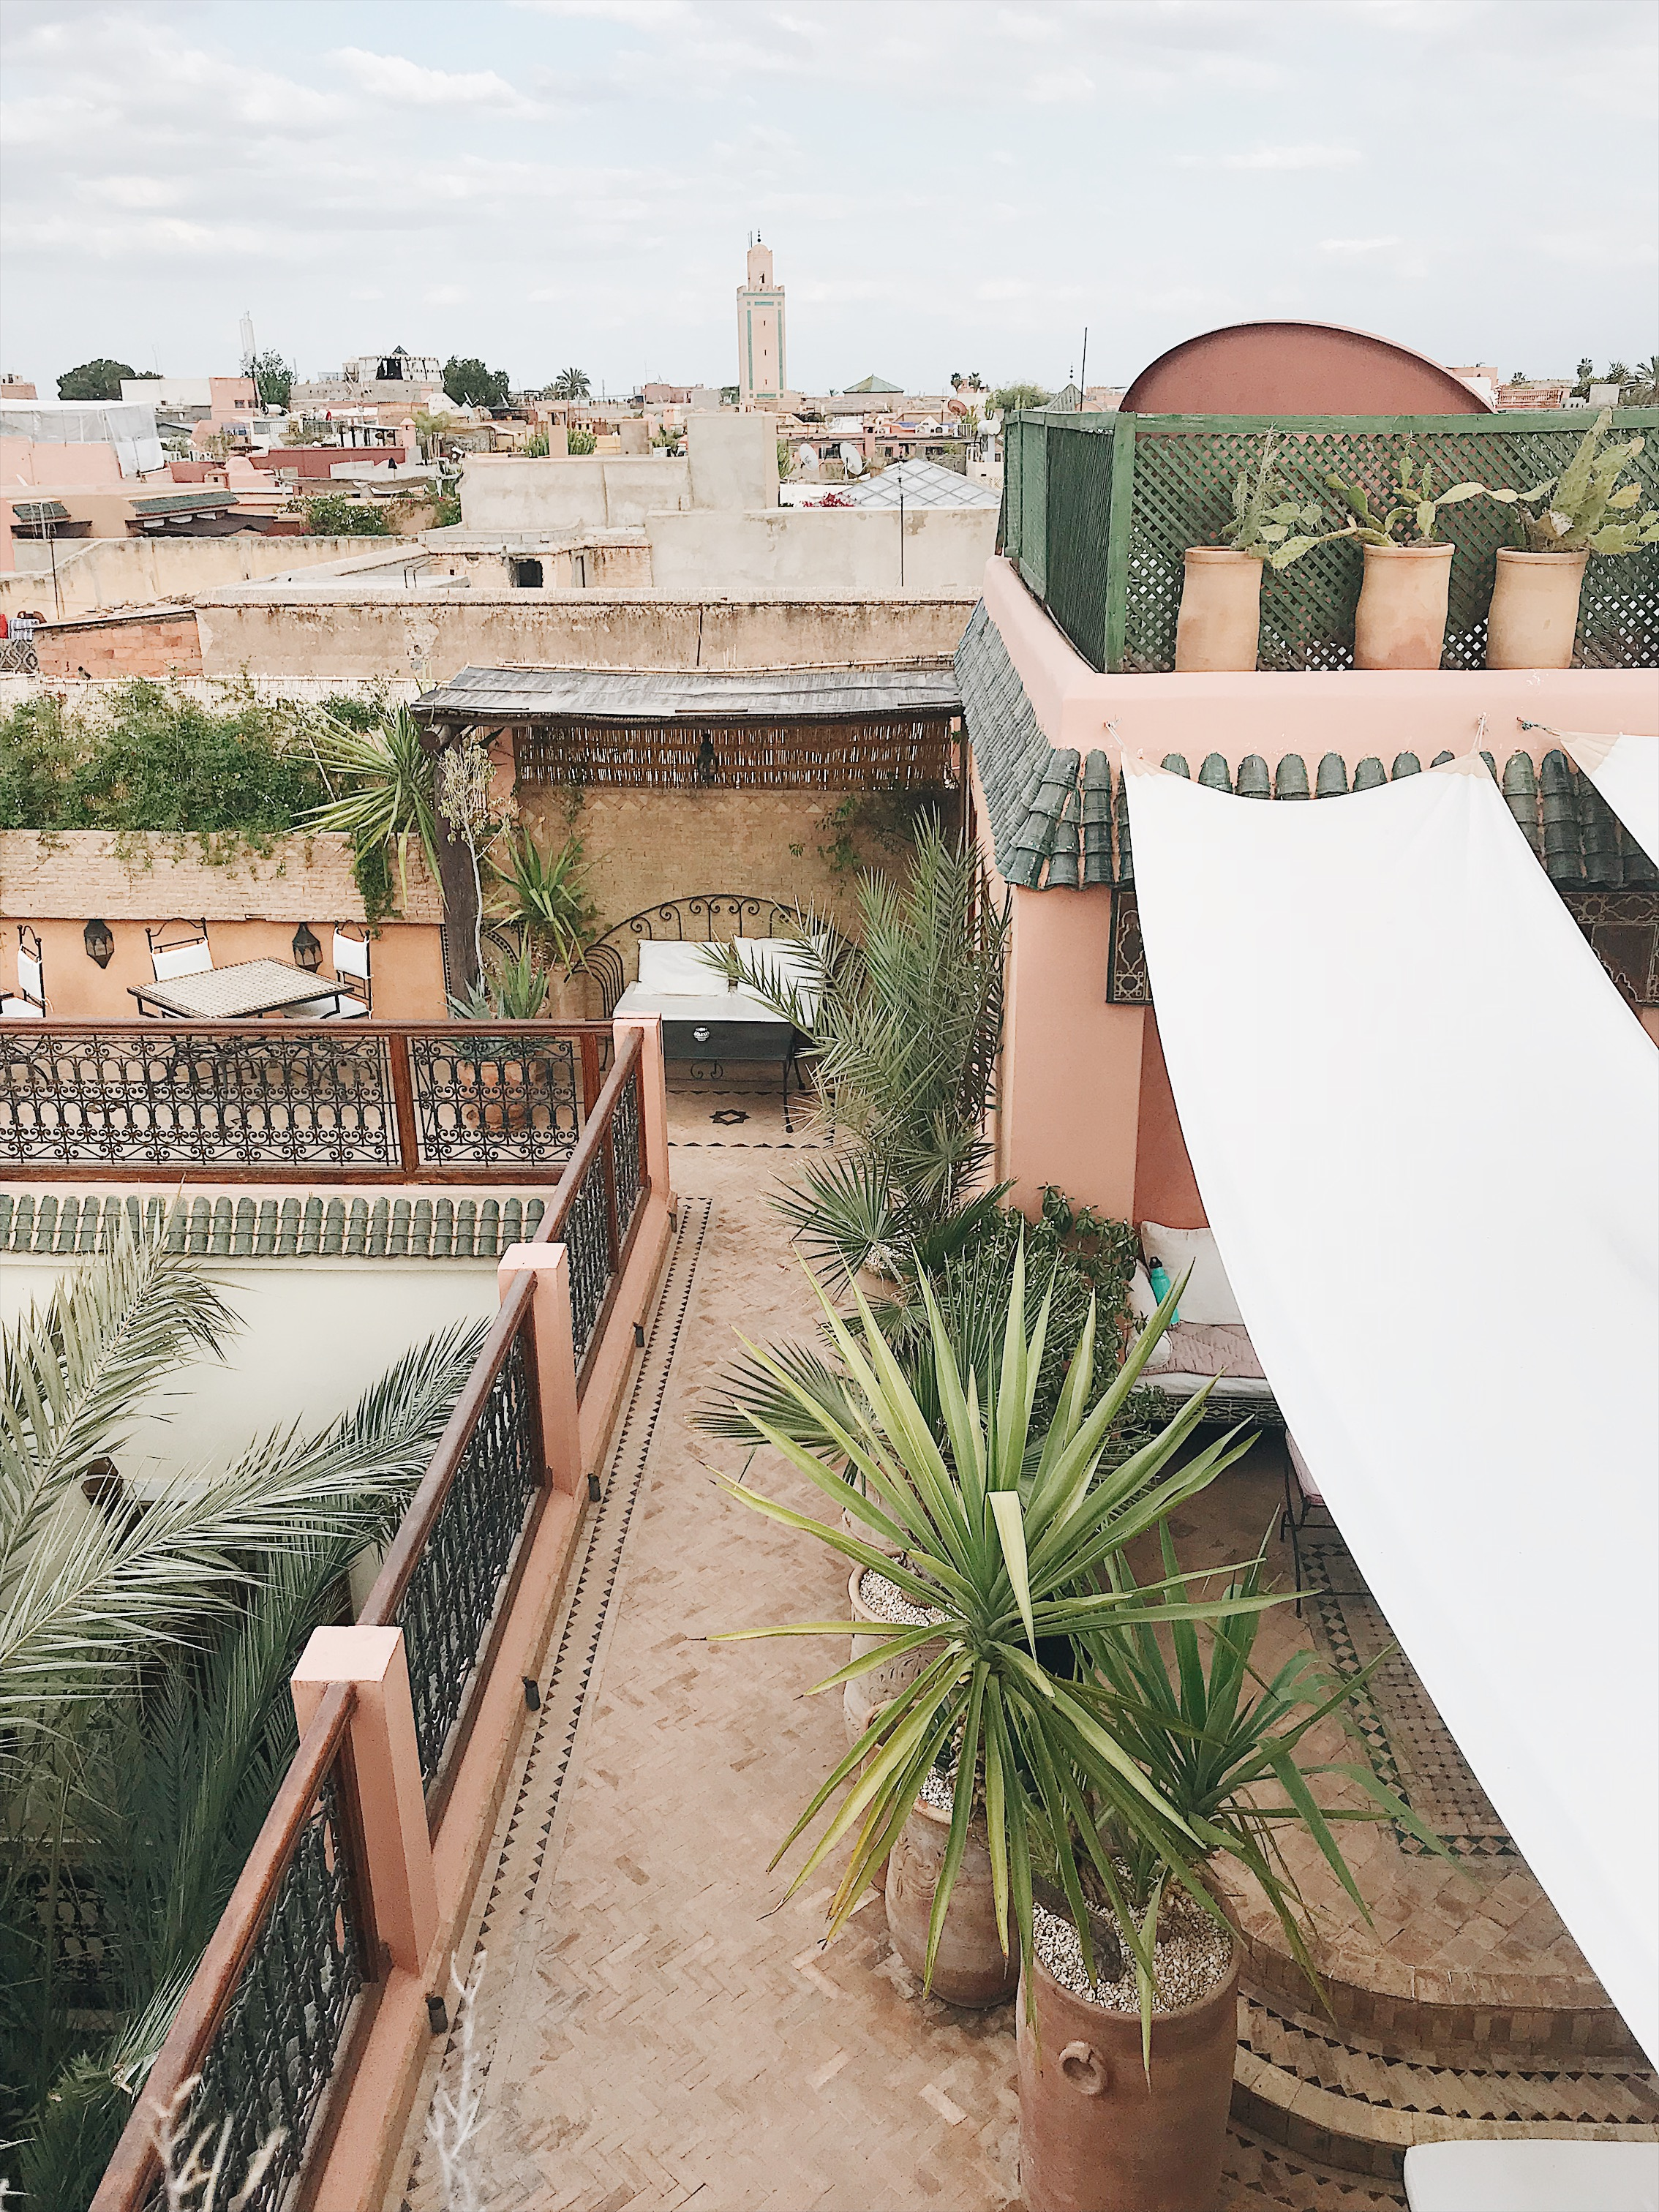 Travel Guide To Marrakech, Morocco - The Well Essentials